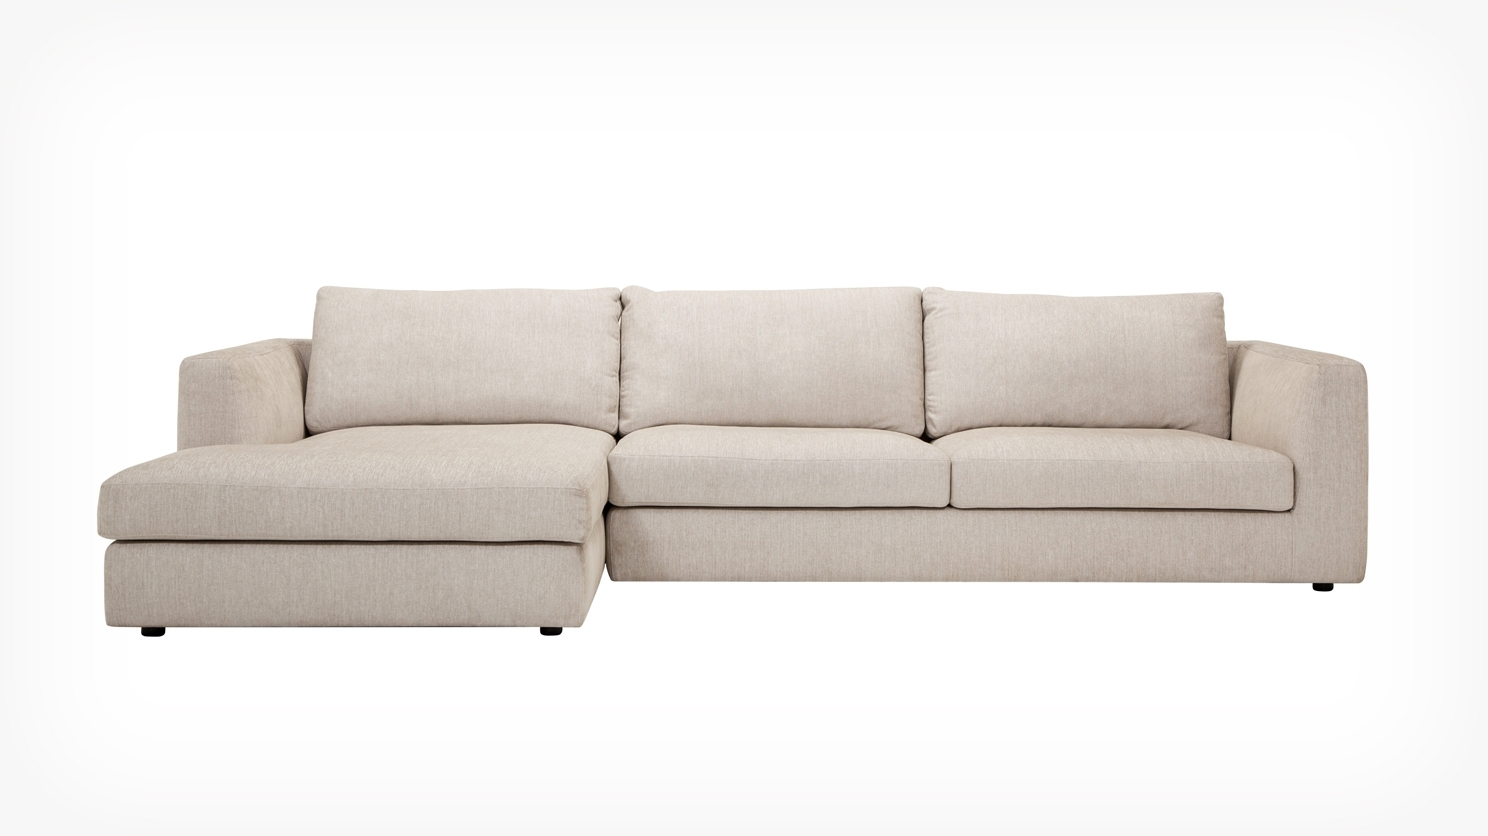 Eq3 Sectional Sofas For Popular Eq (View 10 of 15)